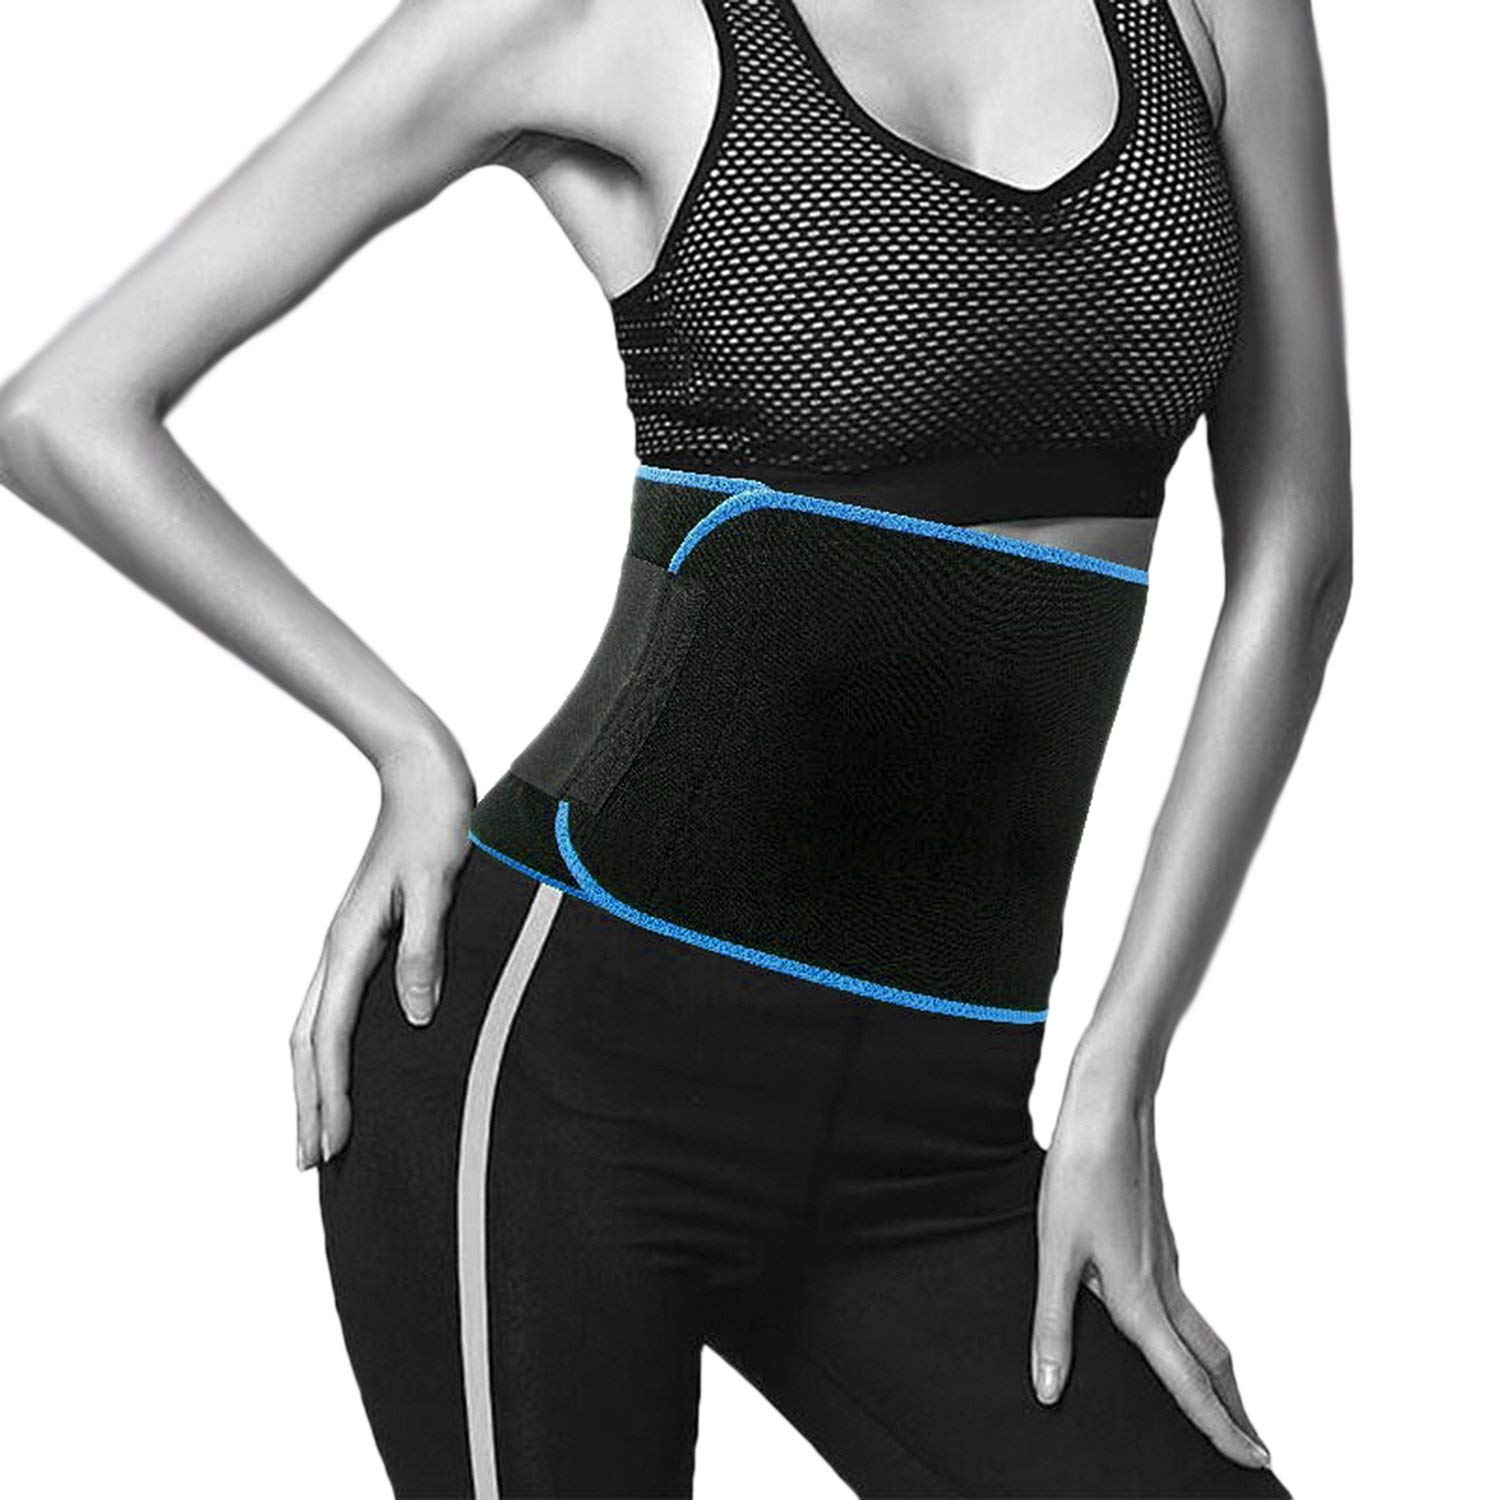 Sweat Waist Trimmer for Women Men, Adjustable Weight Loss Ab Belt Cincher Shapewear Bodysuits Waist Trainer Stomach Belly Fat Burner Wrap Muscle Back Support Workout Abdominal Trainers